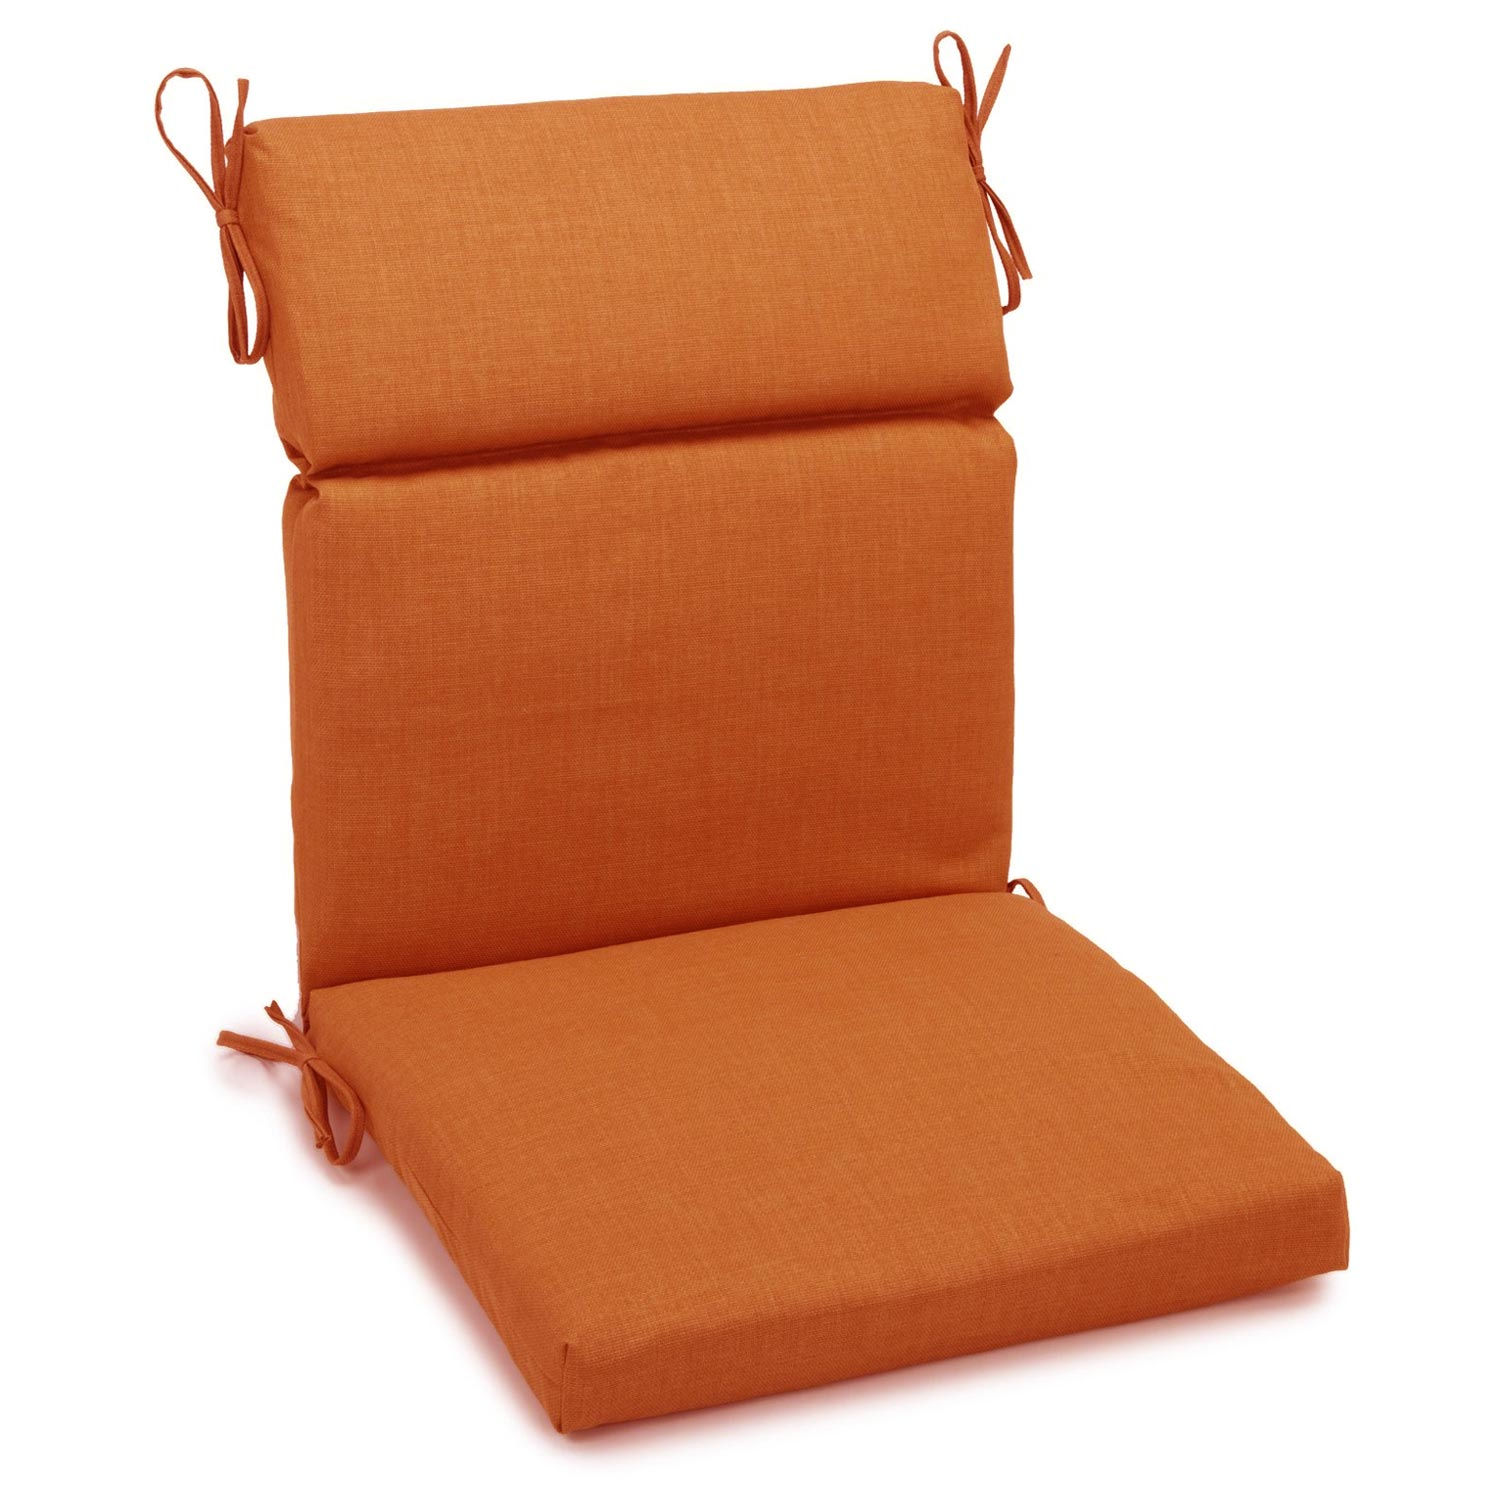 "3-Section 19"" x 42"" Patio Chair Cushion - Ties, Solid Color Fabric - BLZ-919X42-REO-S"